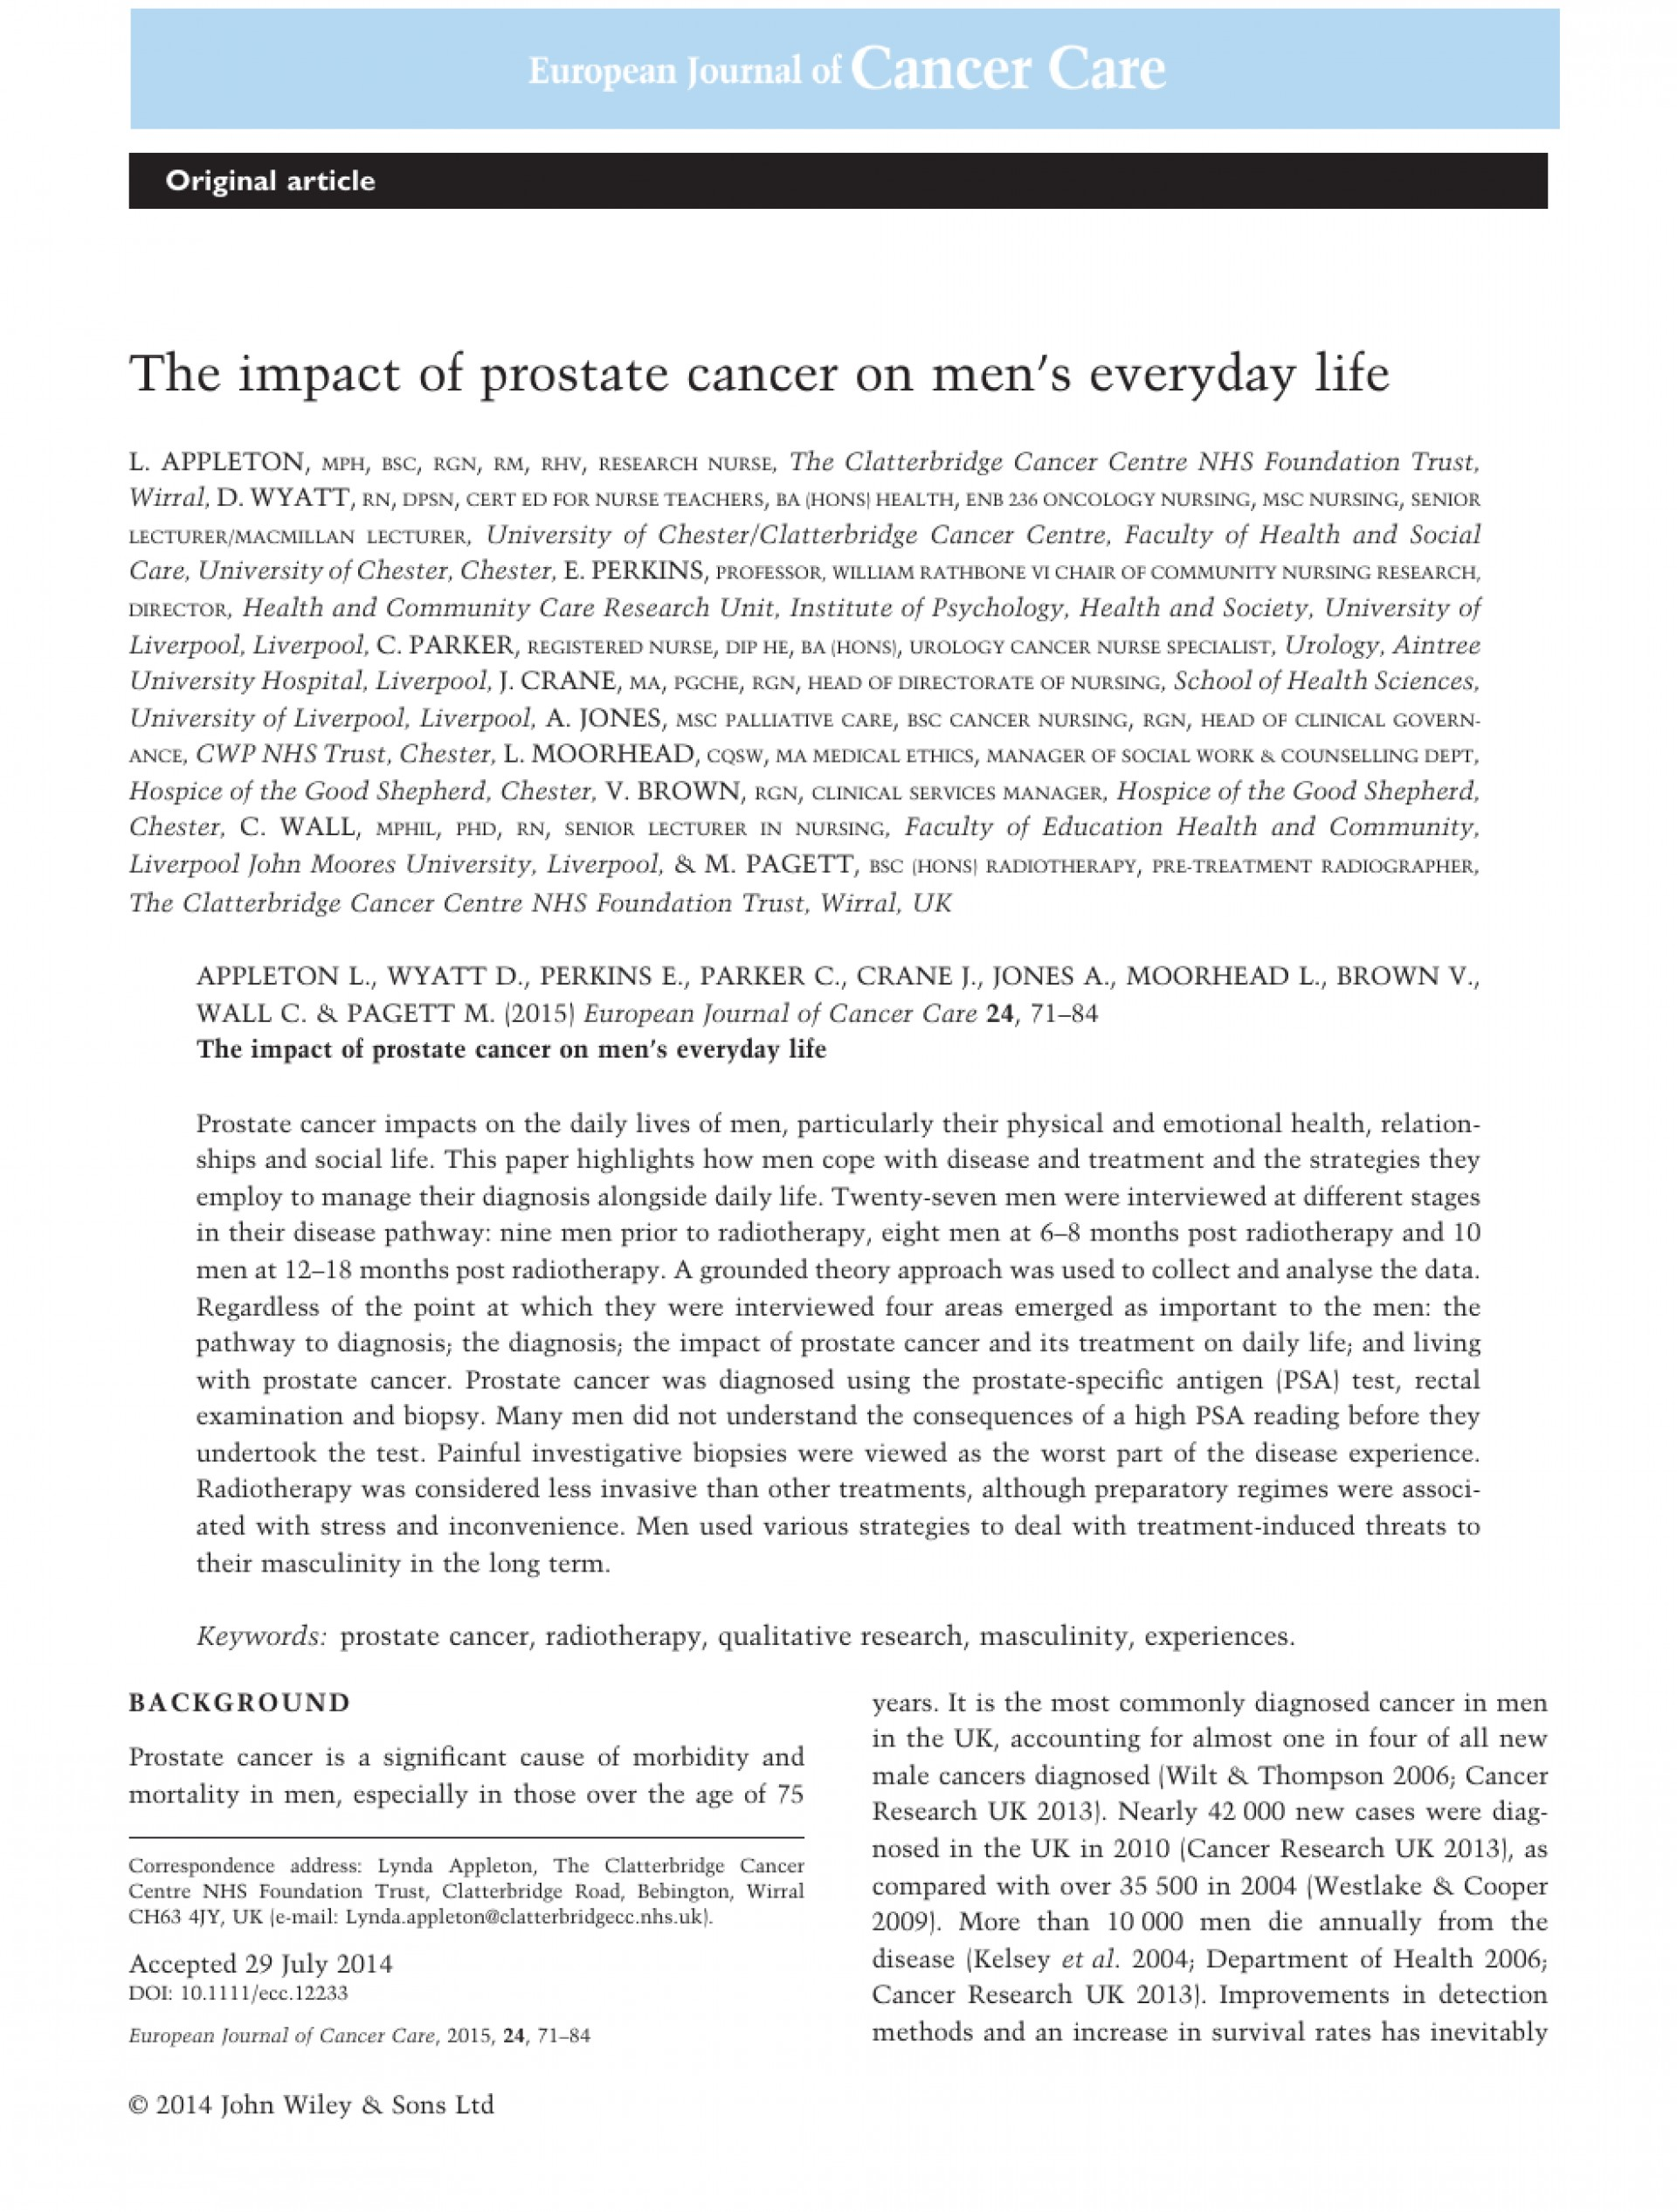 005 Cancer Research Paper Marvelous Topics Prostate Skin Ideas 1920